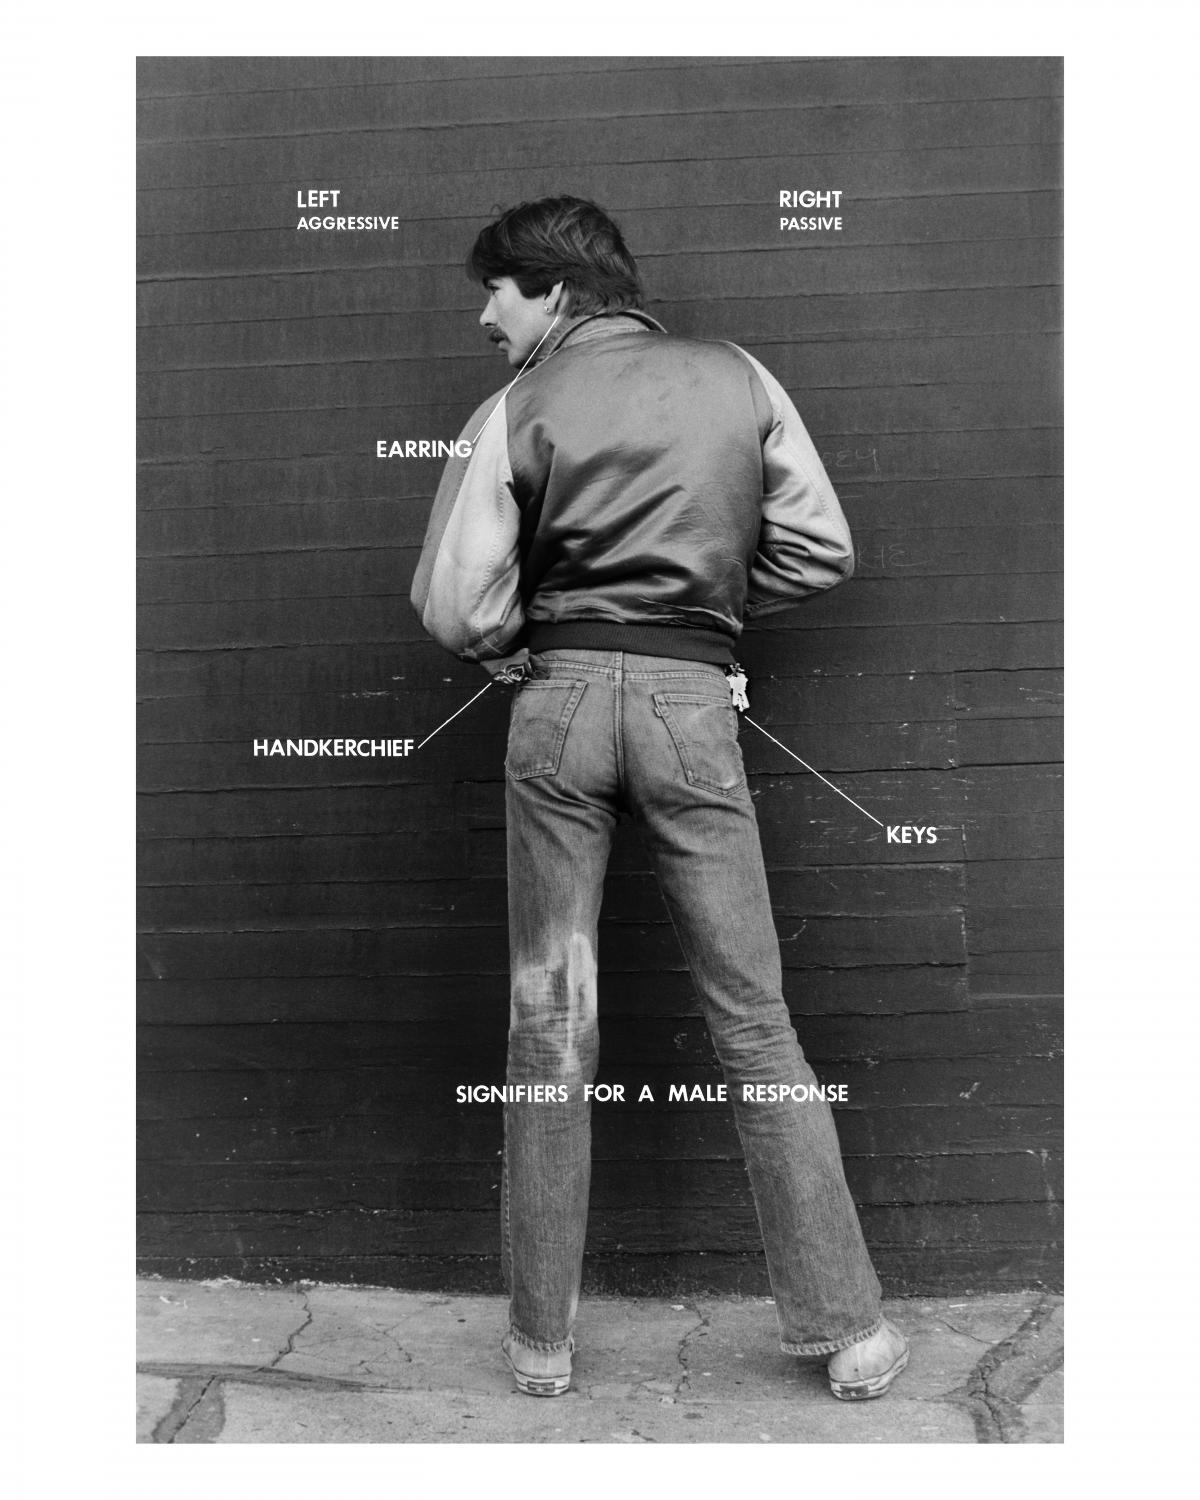 Hal Fischer, Signifiers for a Male Response from Gay Semiotics: A Photographic Study of Visual Coding Among Homosexual Men, 1976. Carbon pigment print, 20 x 16 inches. Courtesy the artist © Hal Fischer